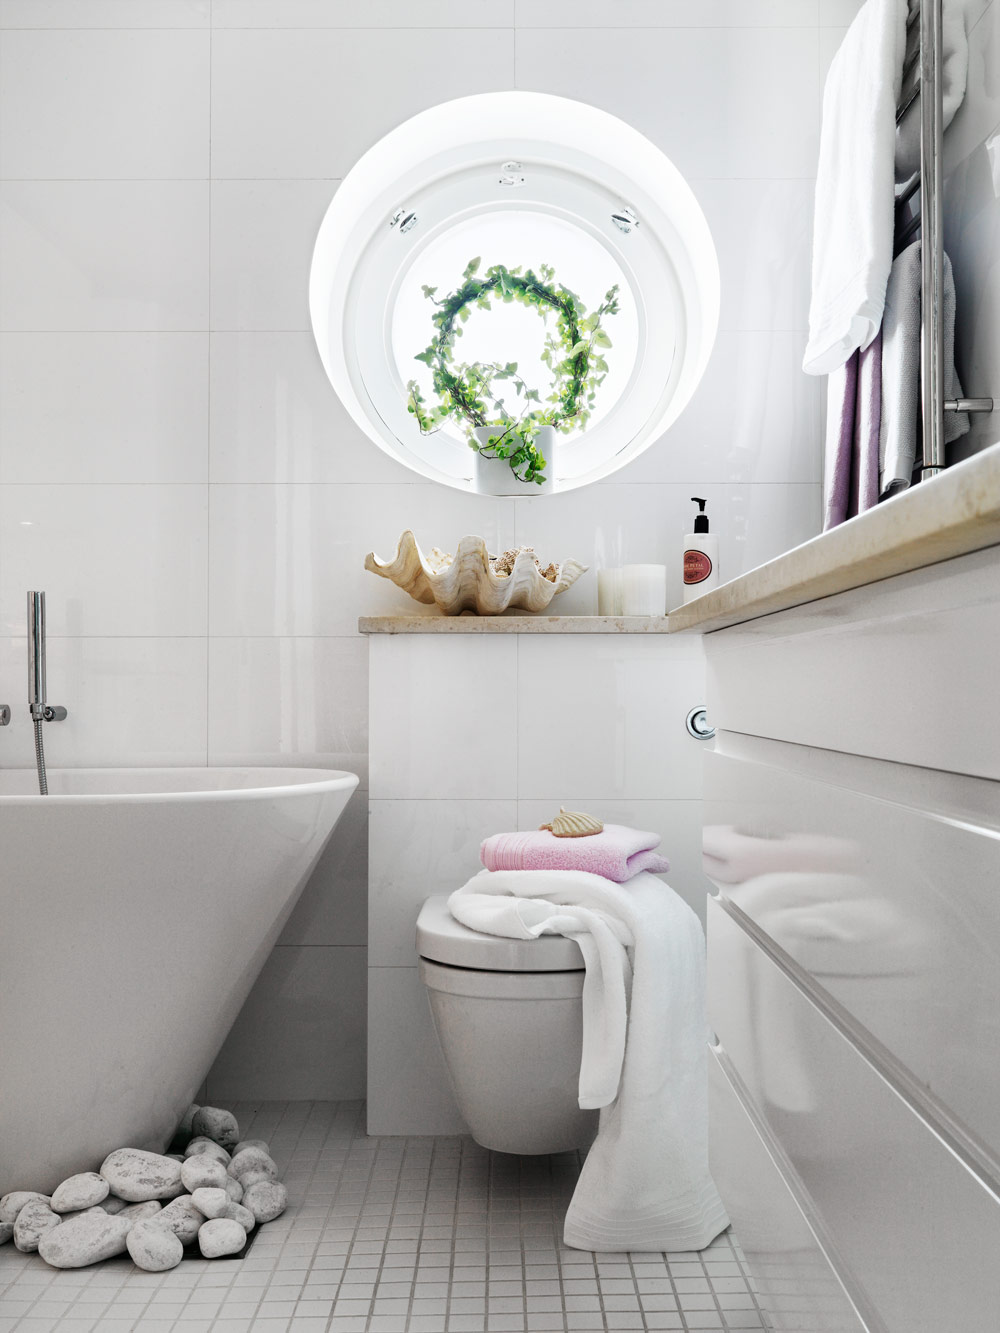 Stylish small bathroom with an unusual decor digsdigs for A small bathroom design